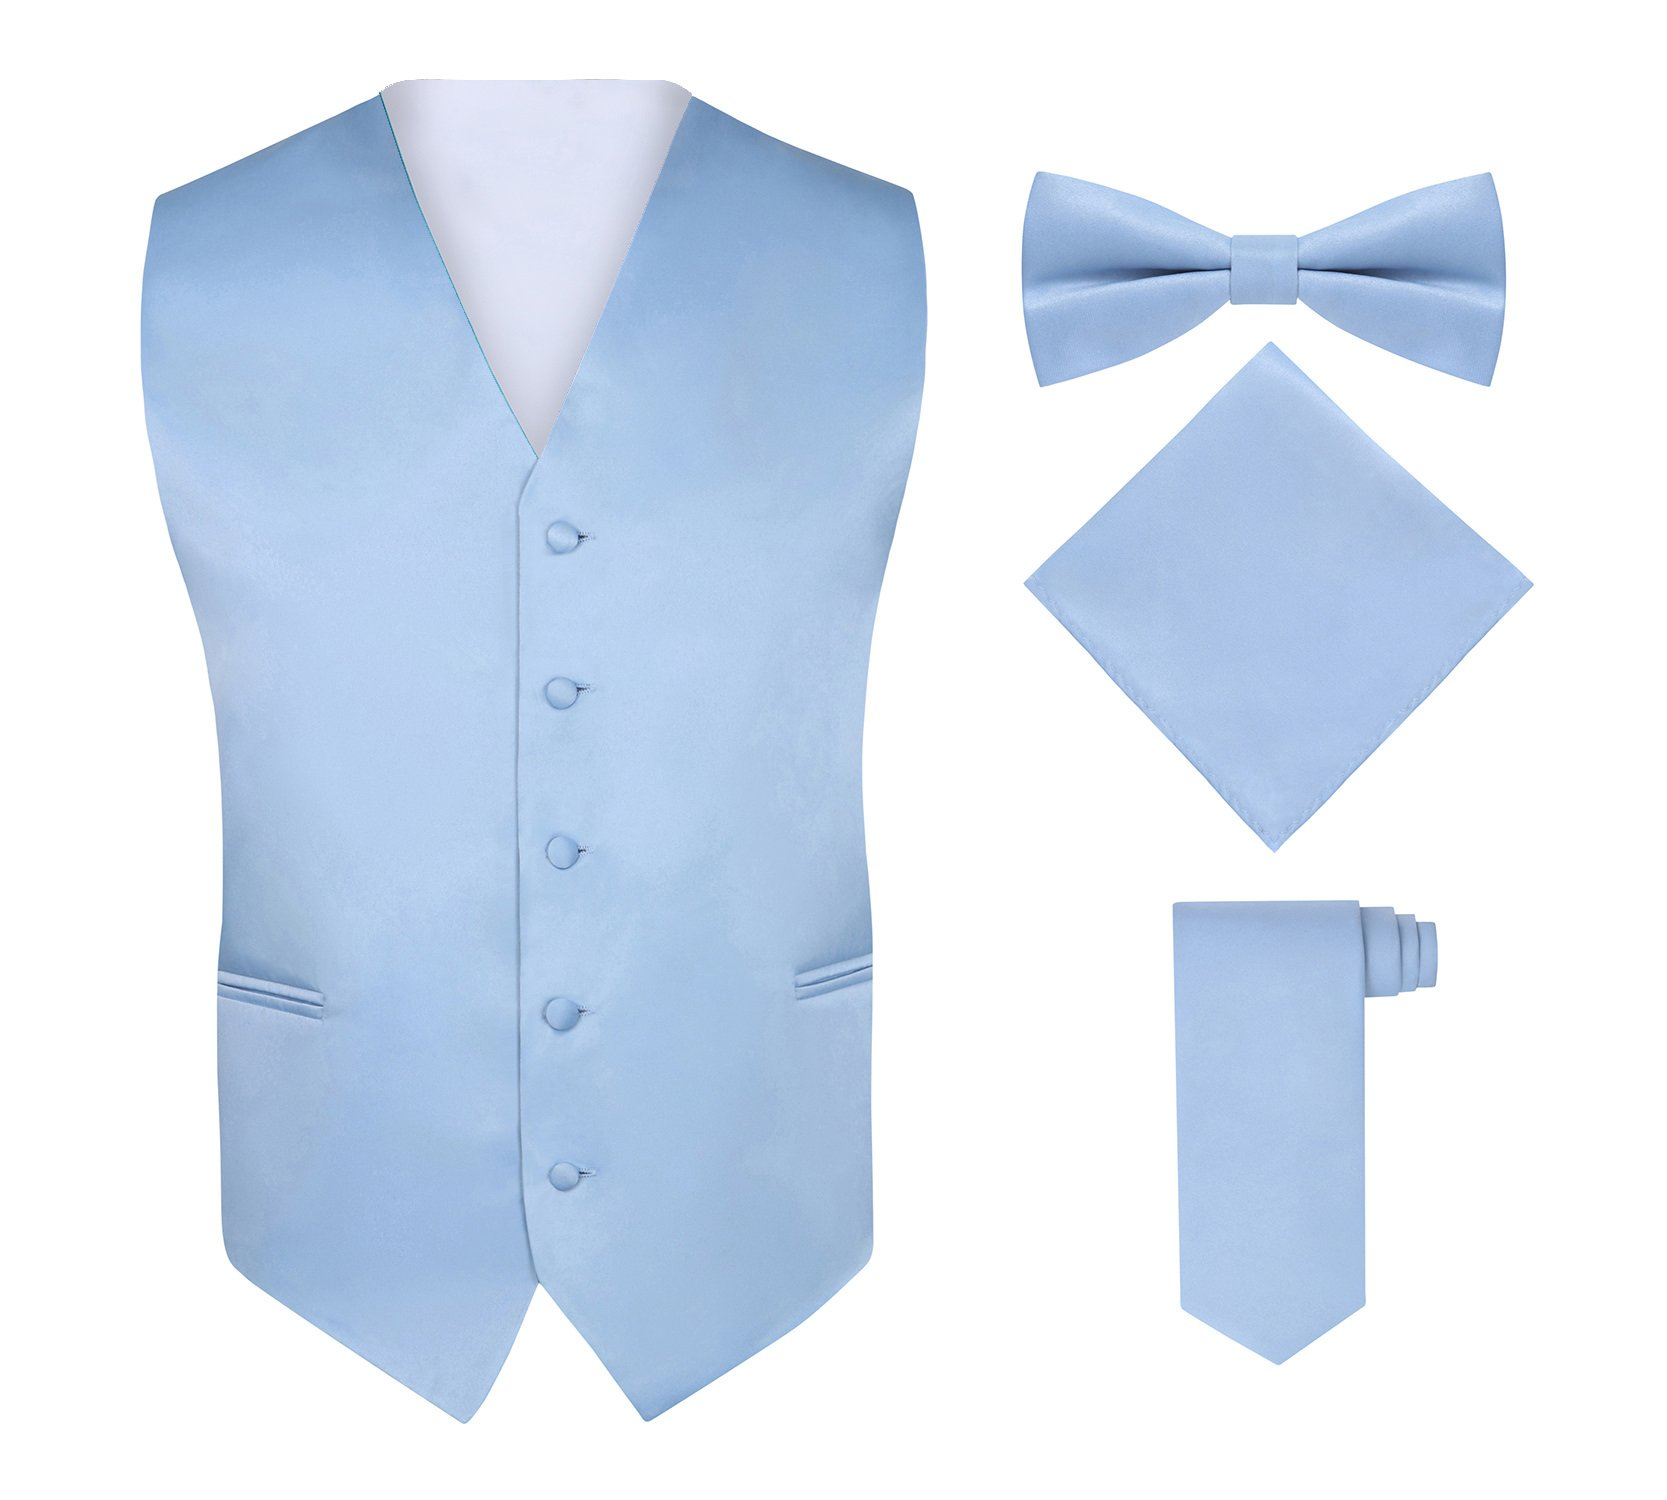 Men's 4 Piece Vest Set, with Bow Tie, Neck Tie & Pocket Hankie - Light Blue, M